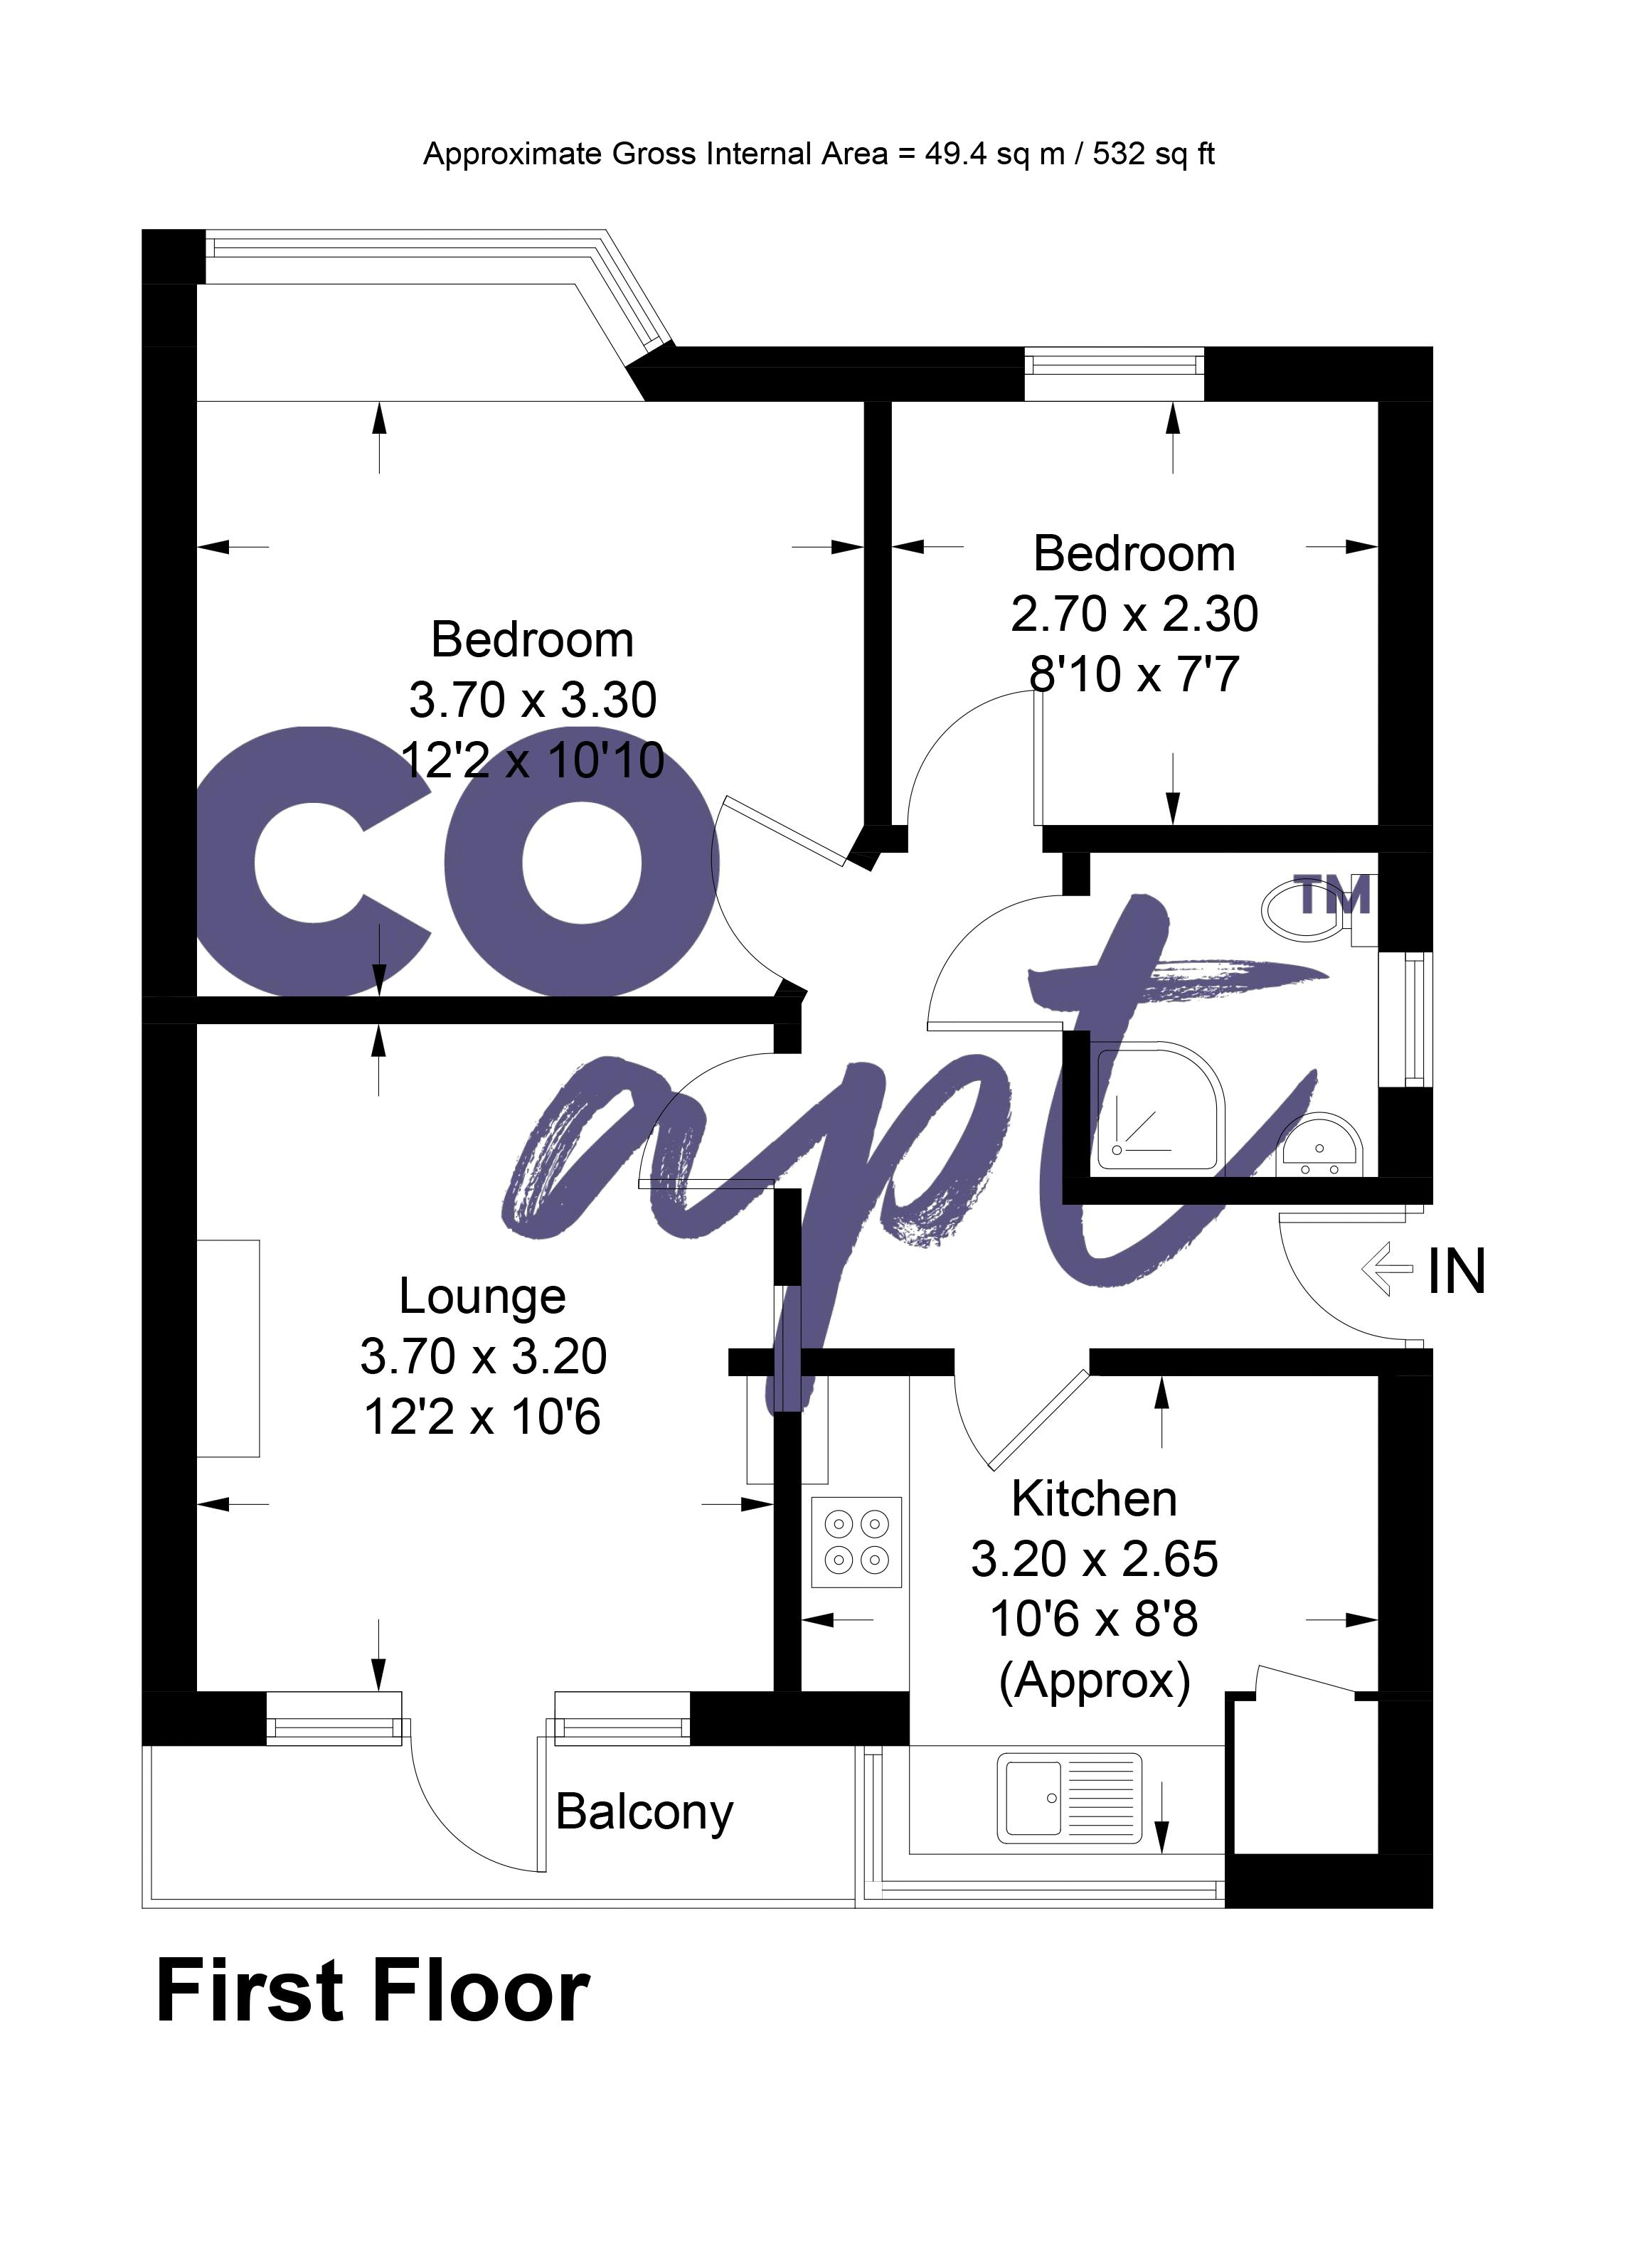 Floor plans for Hillside Way, Brighton property for sale in Bevendean, Brighton by Coapt